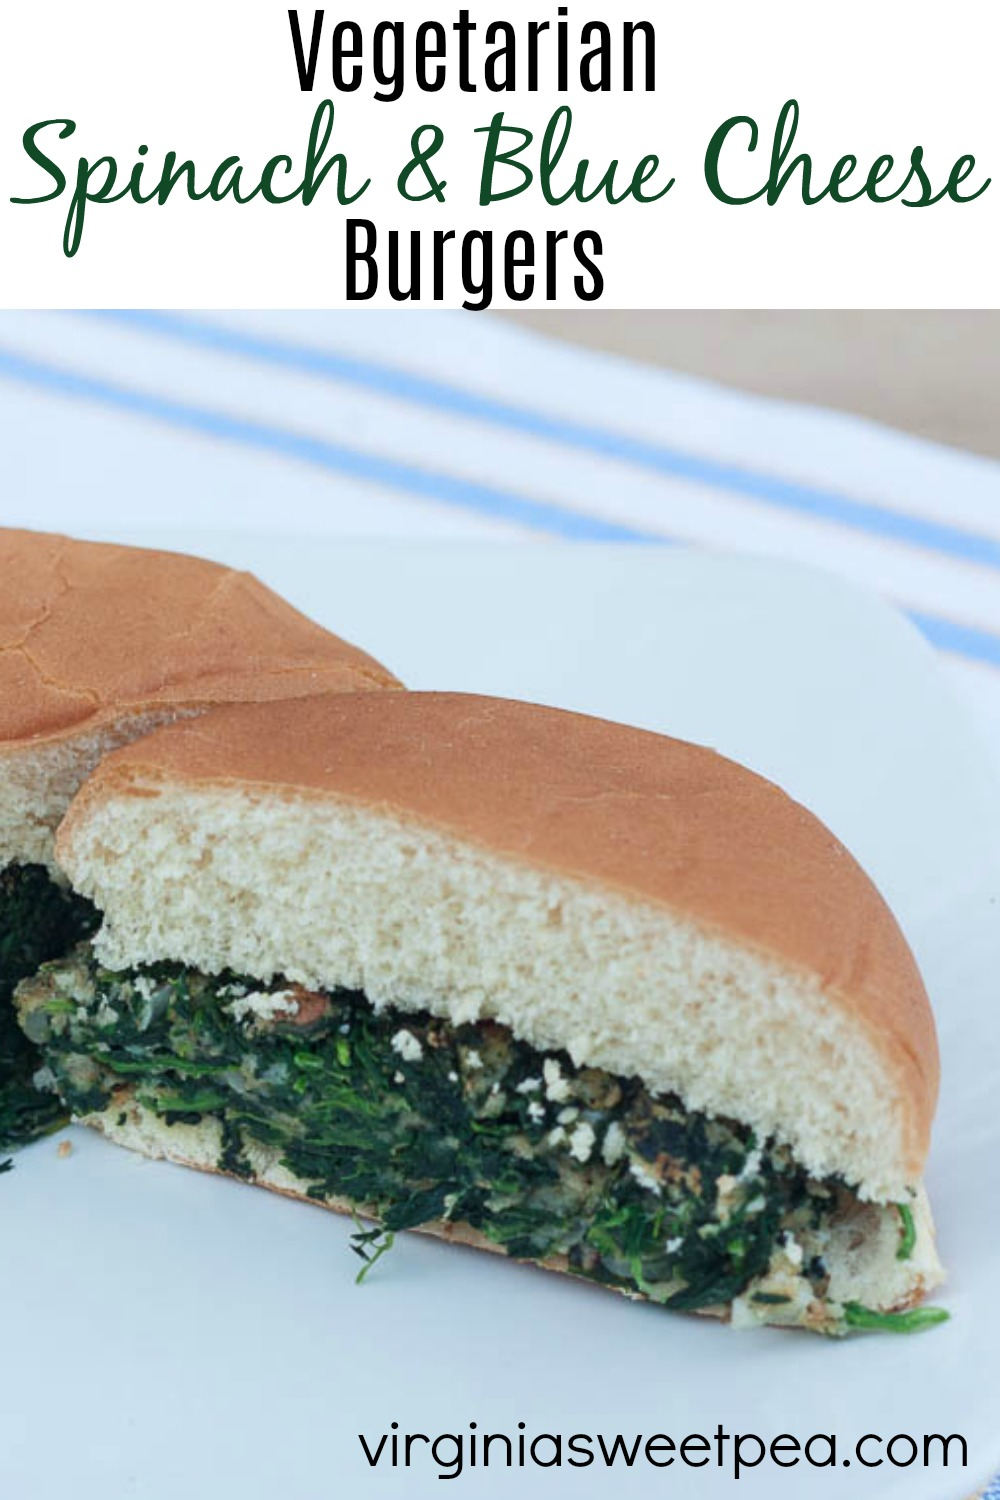 Vegetarian Spinach and Blue Cheese Burgers - Skip the meat with this delicious spinach burger!  This is a family favorite recipe that is great for grilling.  #vegetarian #meatless #vegetarianburger #spinachburger via @spaula